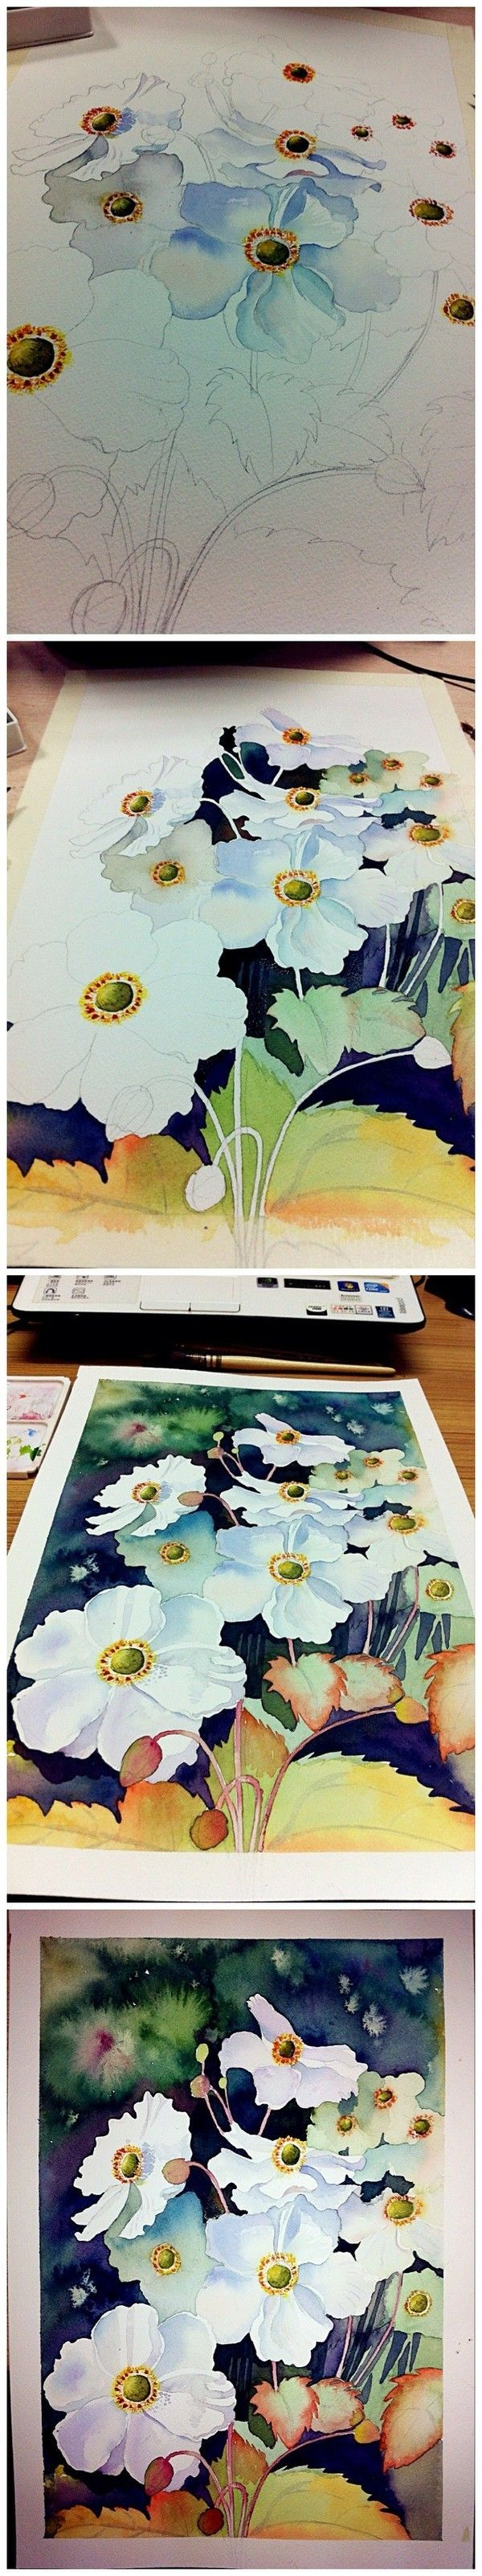 Watercolor illustrations step by step. This is so beautiful.